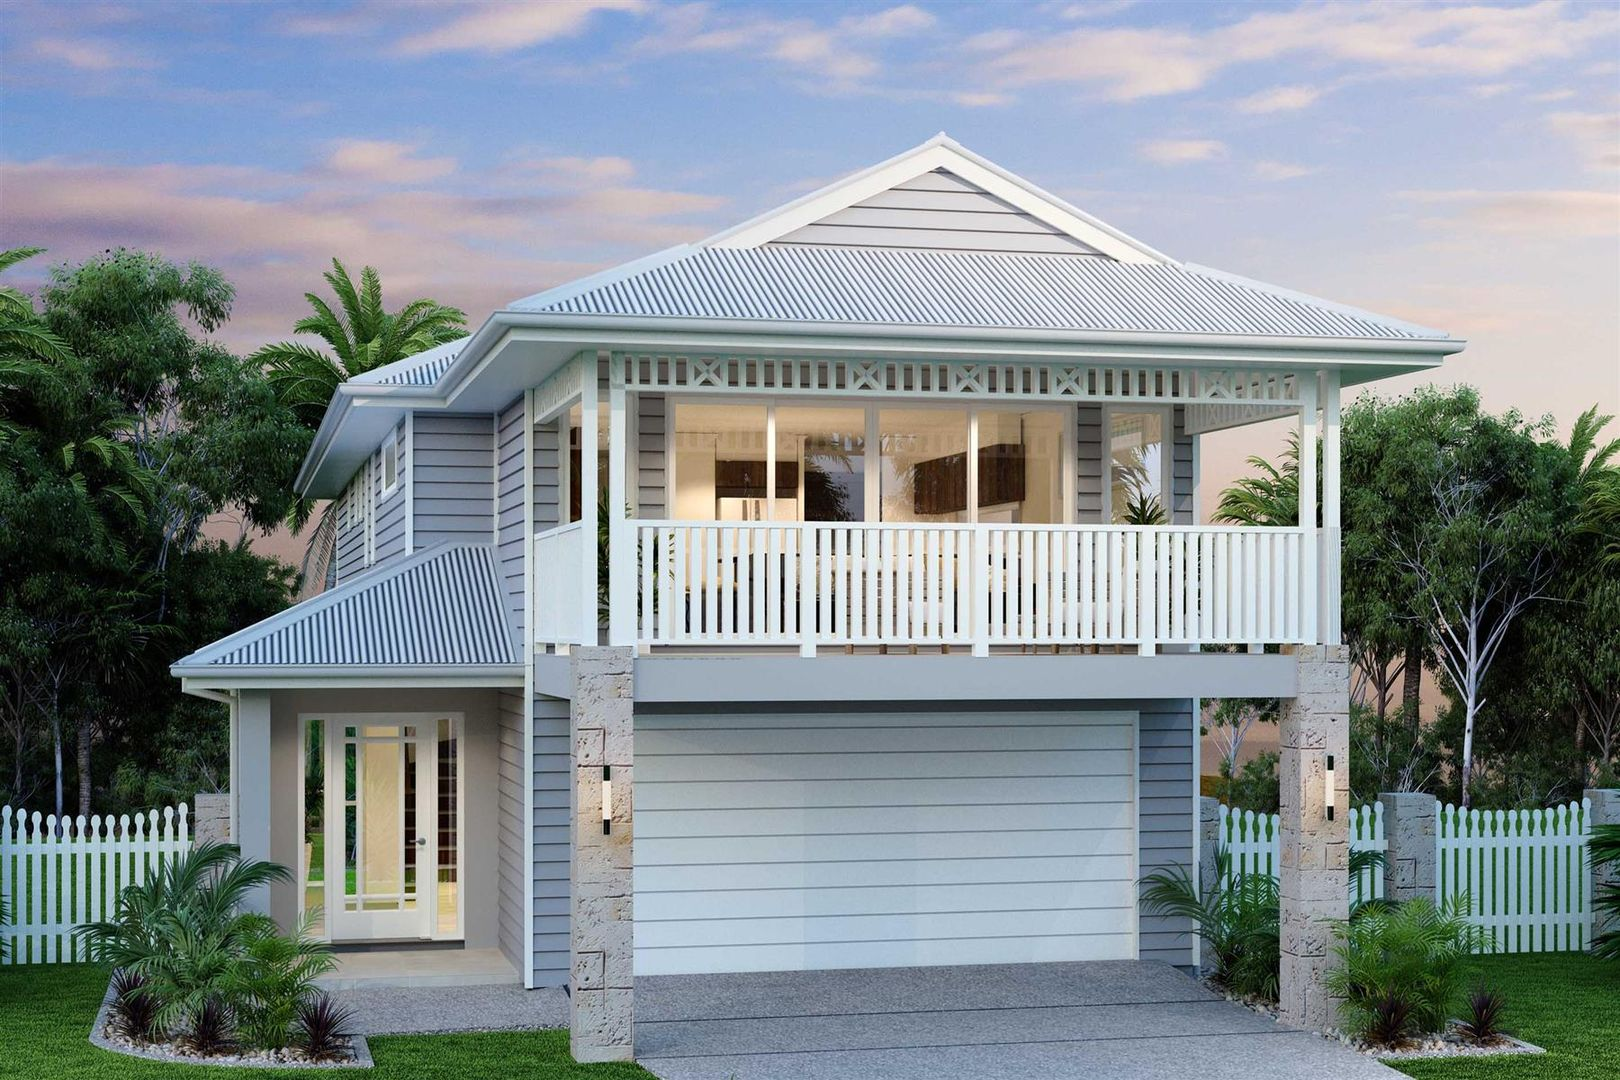 Lot with new house Seventeenth Avenue, Sawtell NSW 2452, Image 0